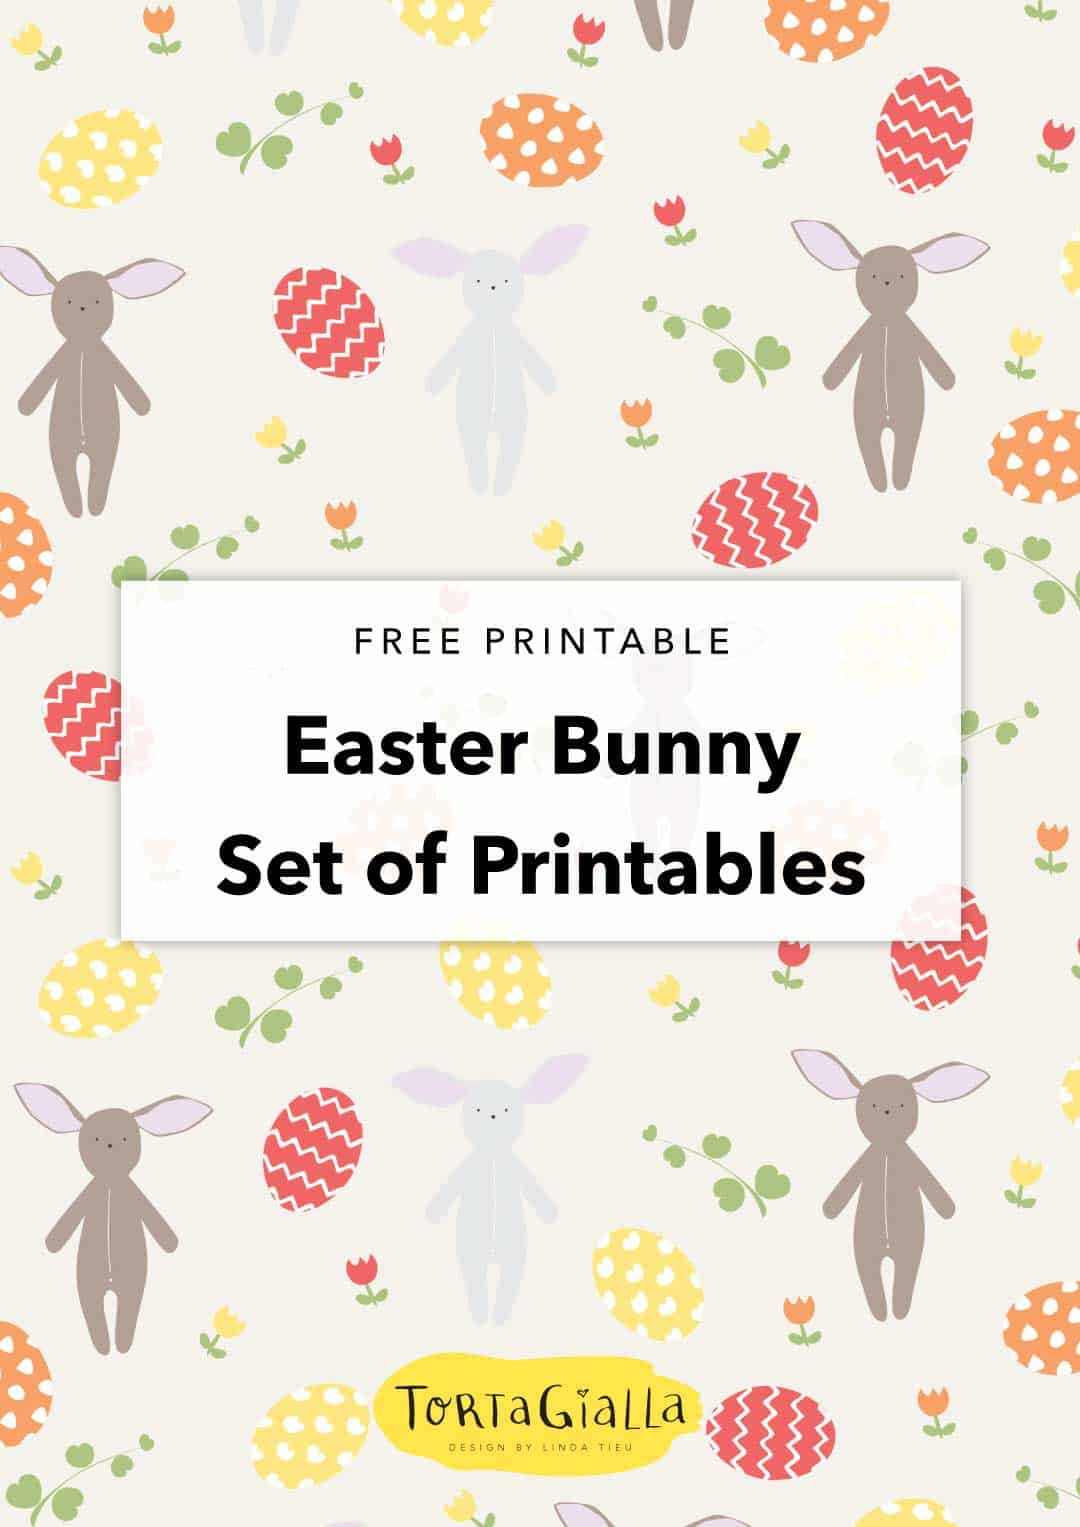 picture regarding Easter Bunny Printable titled No cost Easter Bunny Printables tortagialla